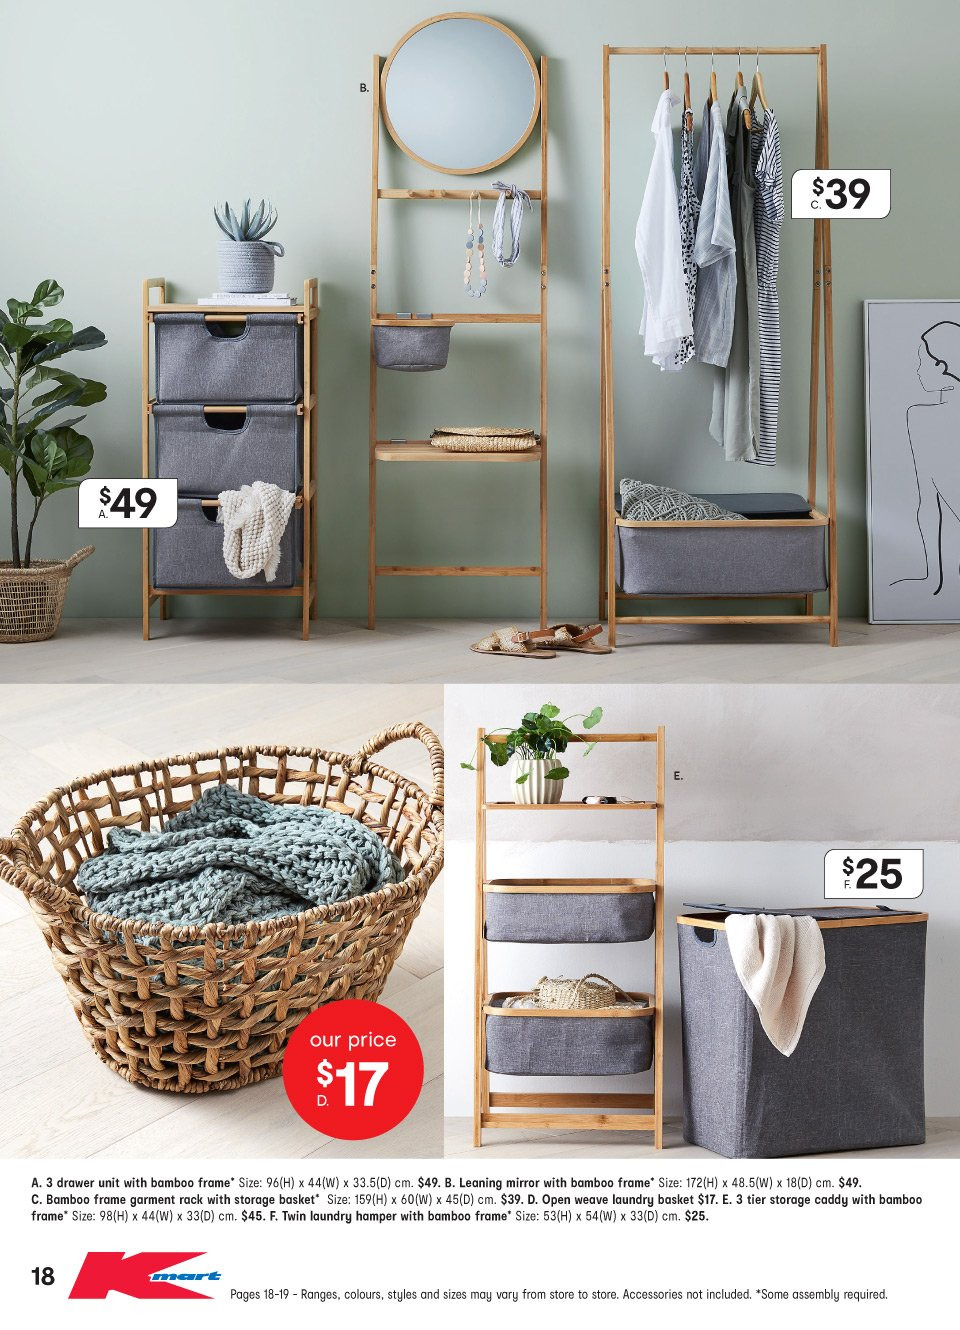 Kmart catalogue and weekly specials 31 1 2019 - 20 2 2019